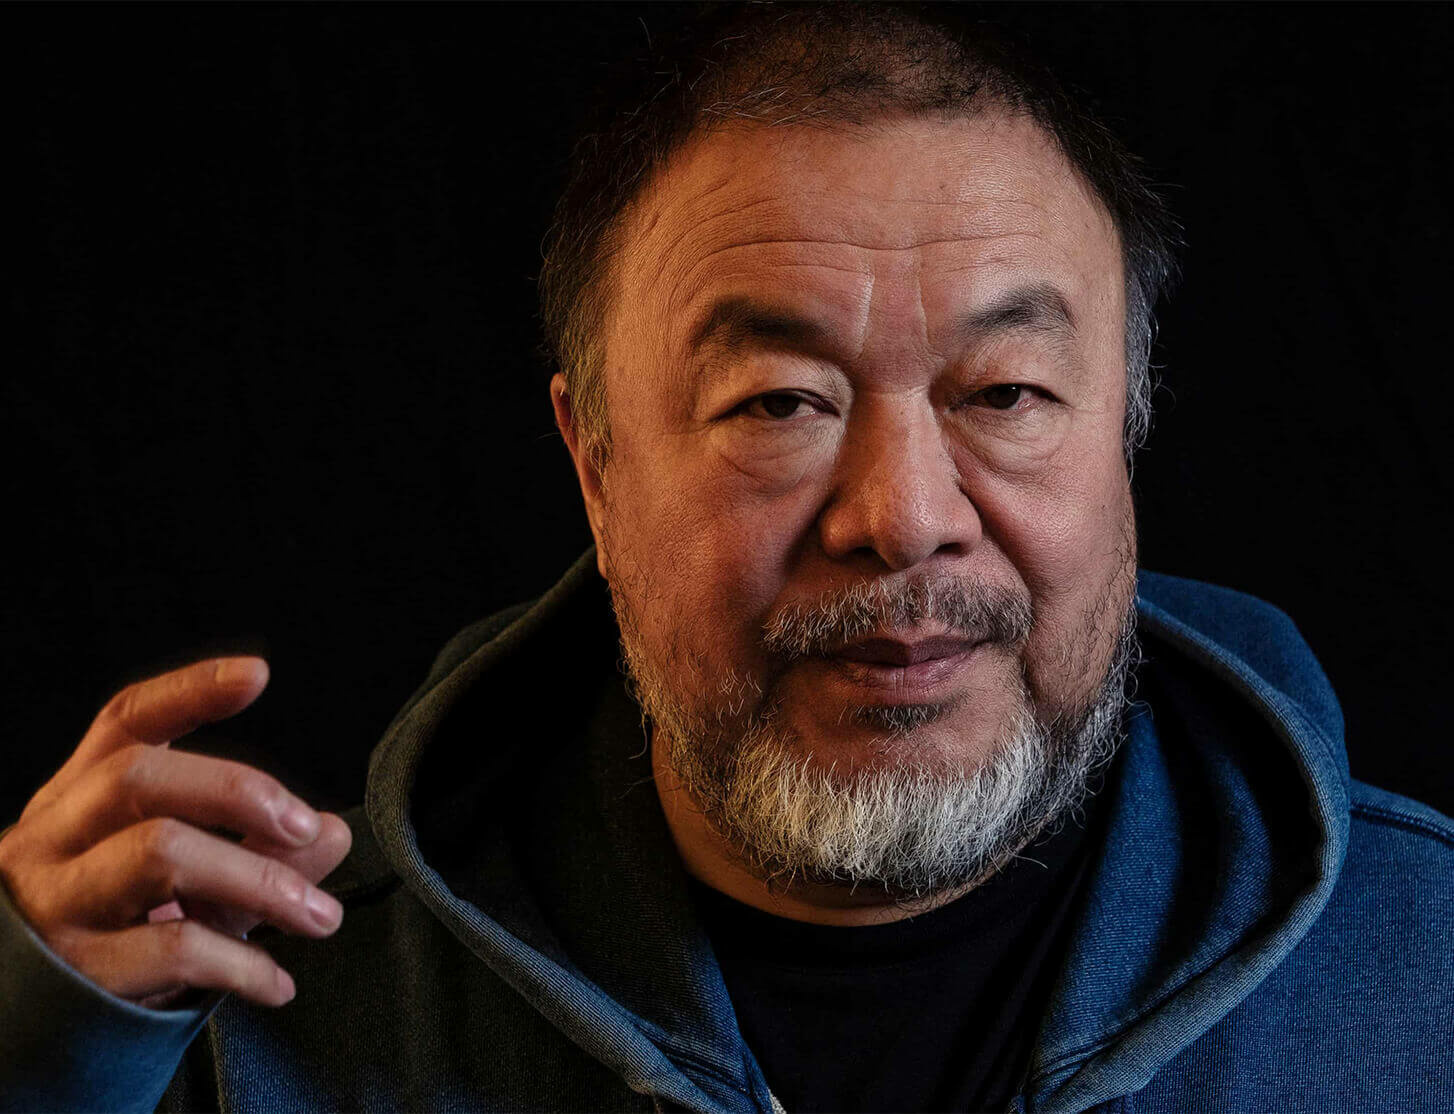 Ai Weiwei answers questions on creativity, protest and Chinese politics for The Observer